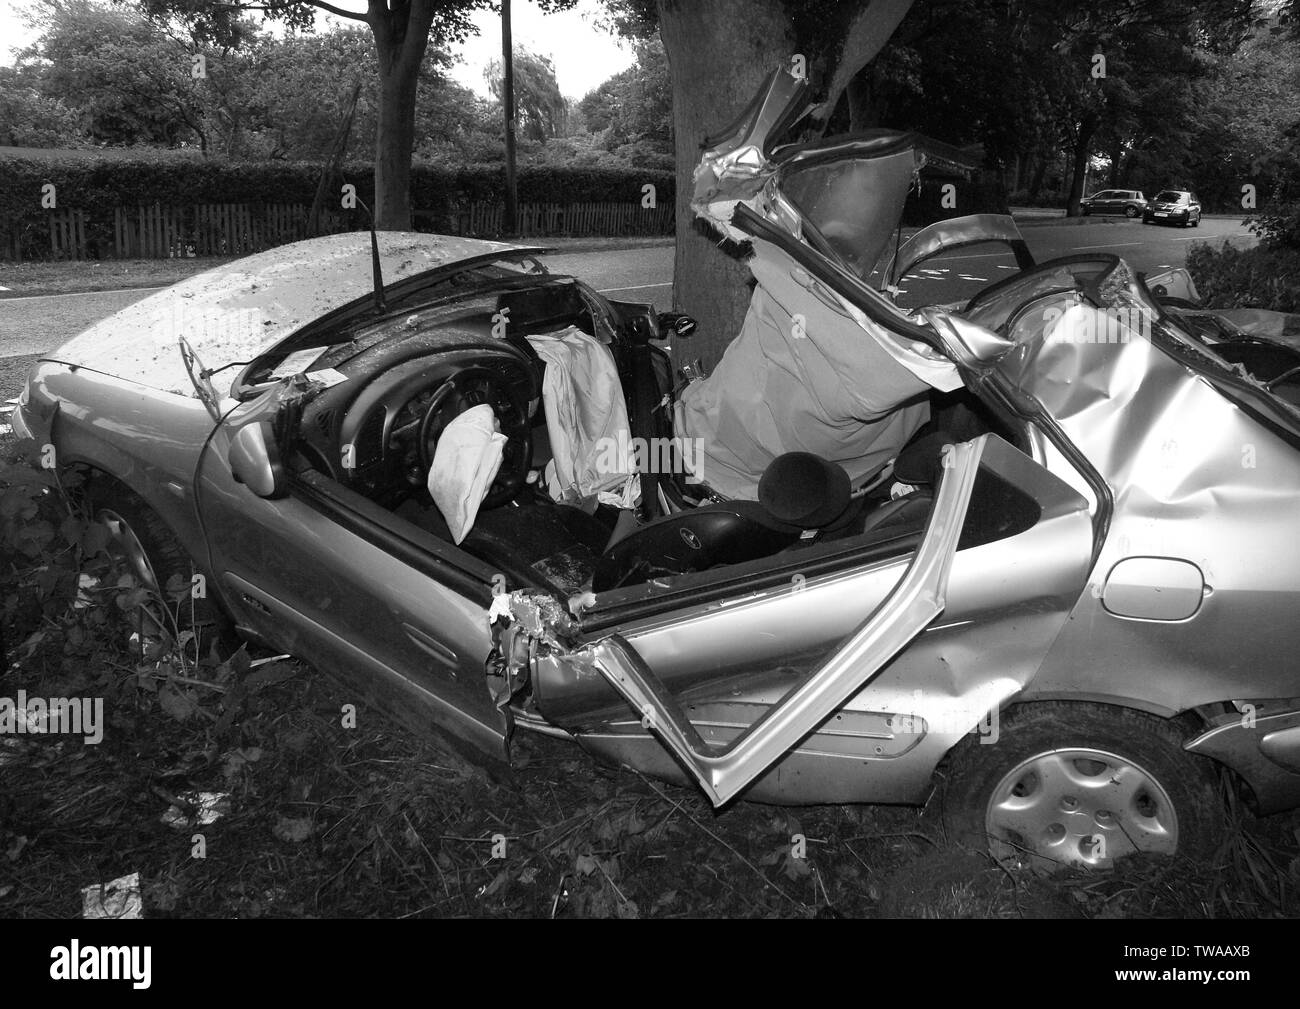 Car Crash Black and White Stock Photos & Images - Alamy